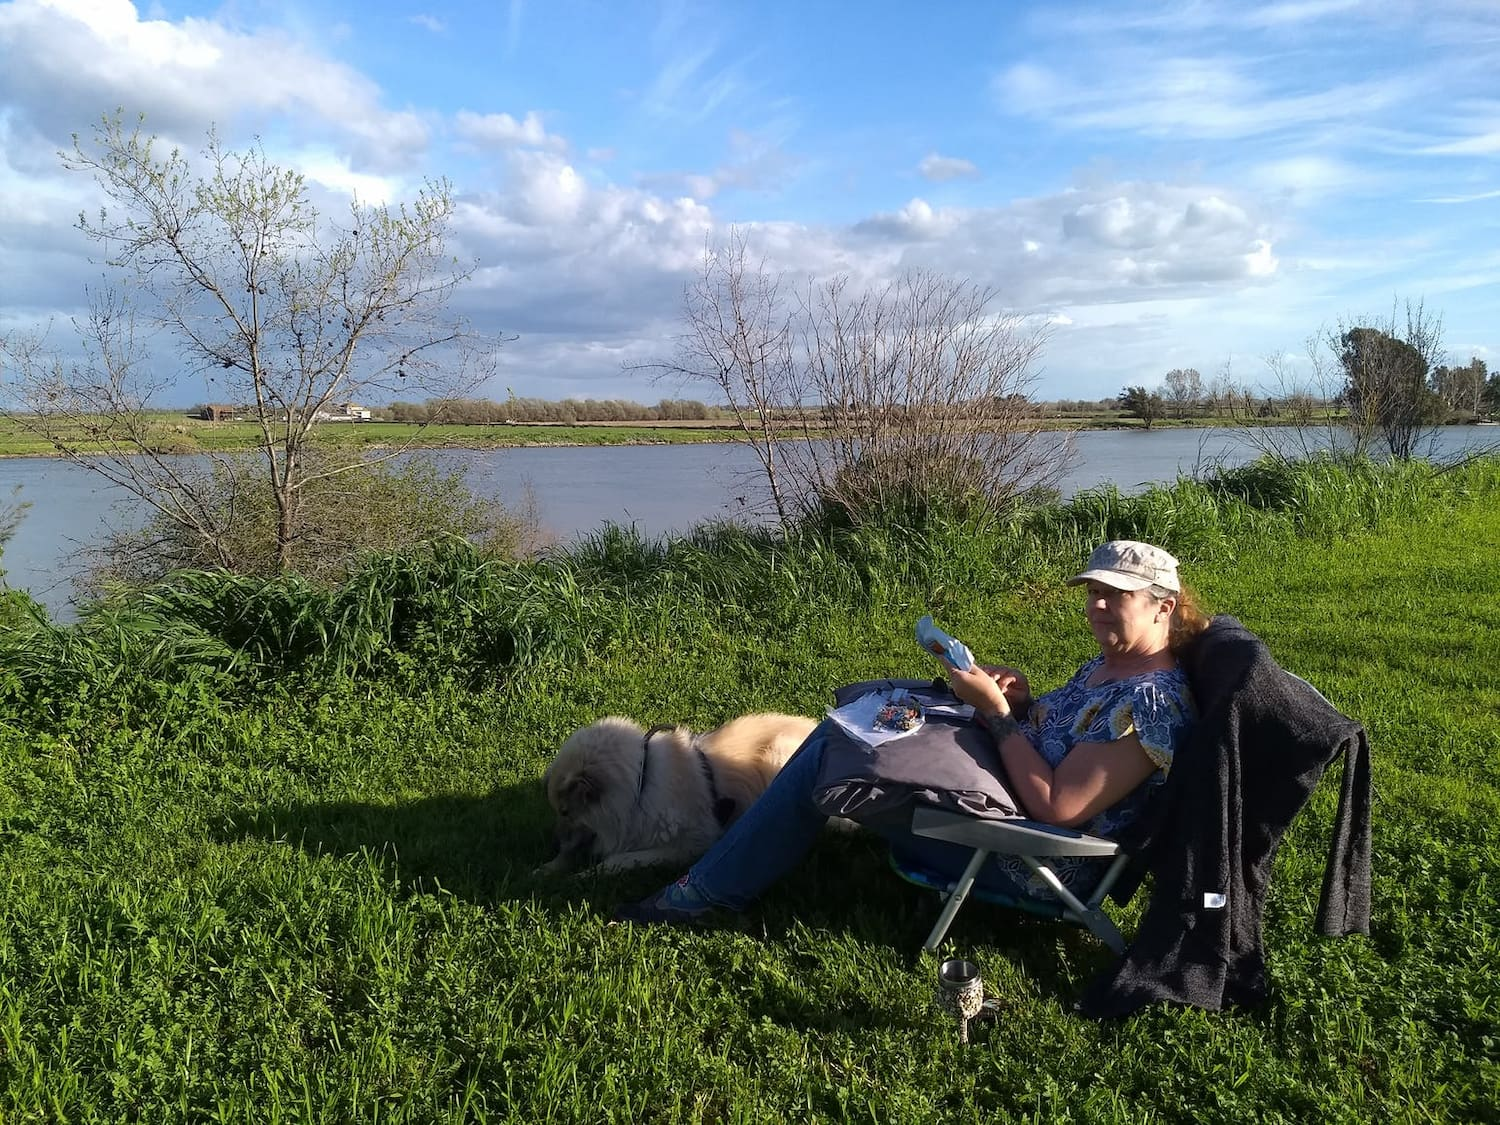 woman sitting on camp chair in grassy field